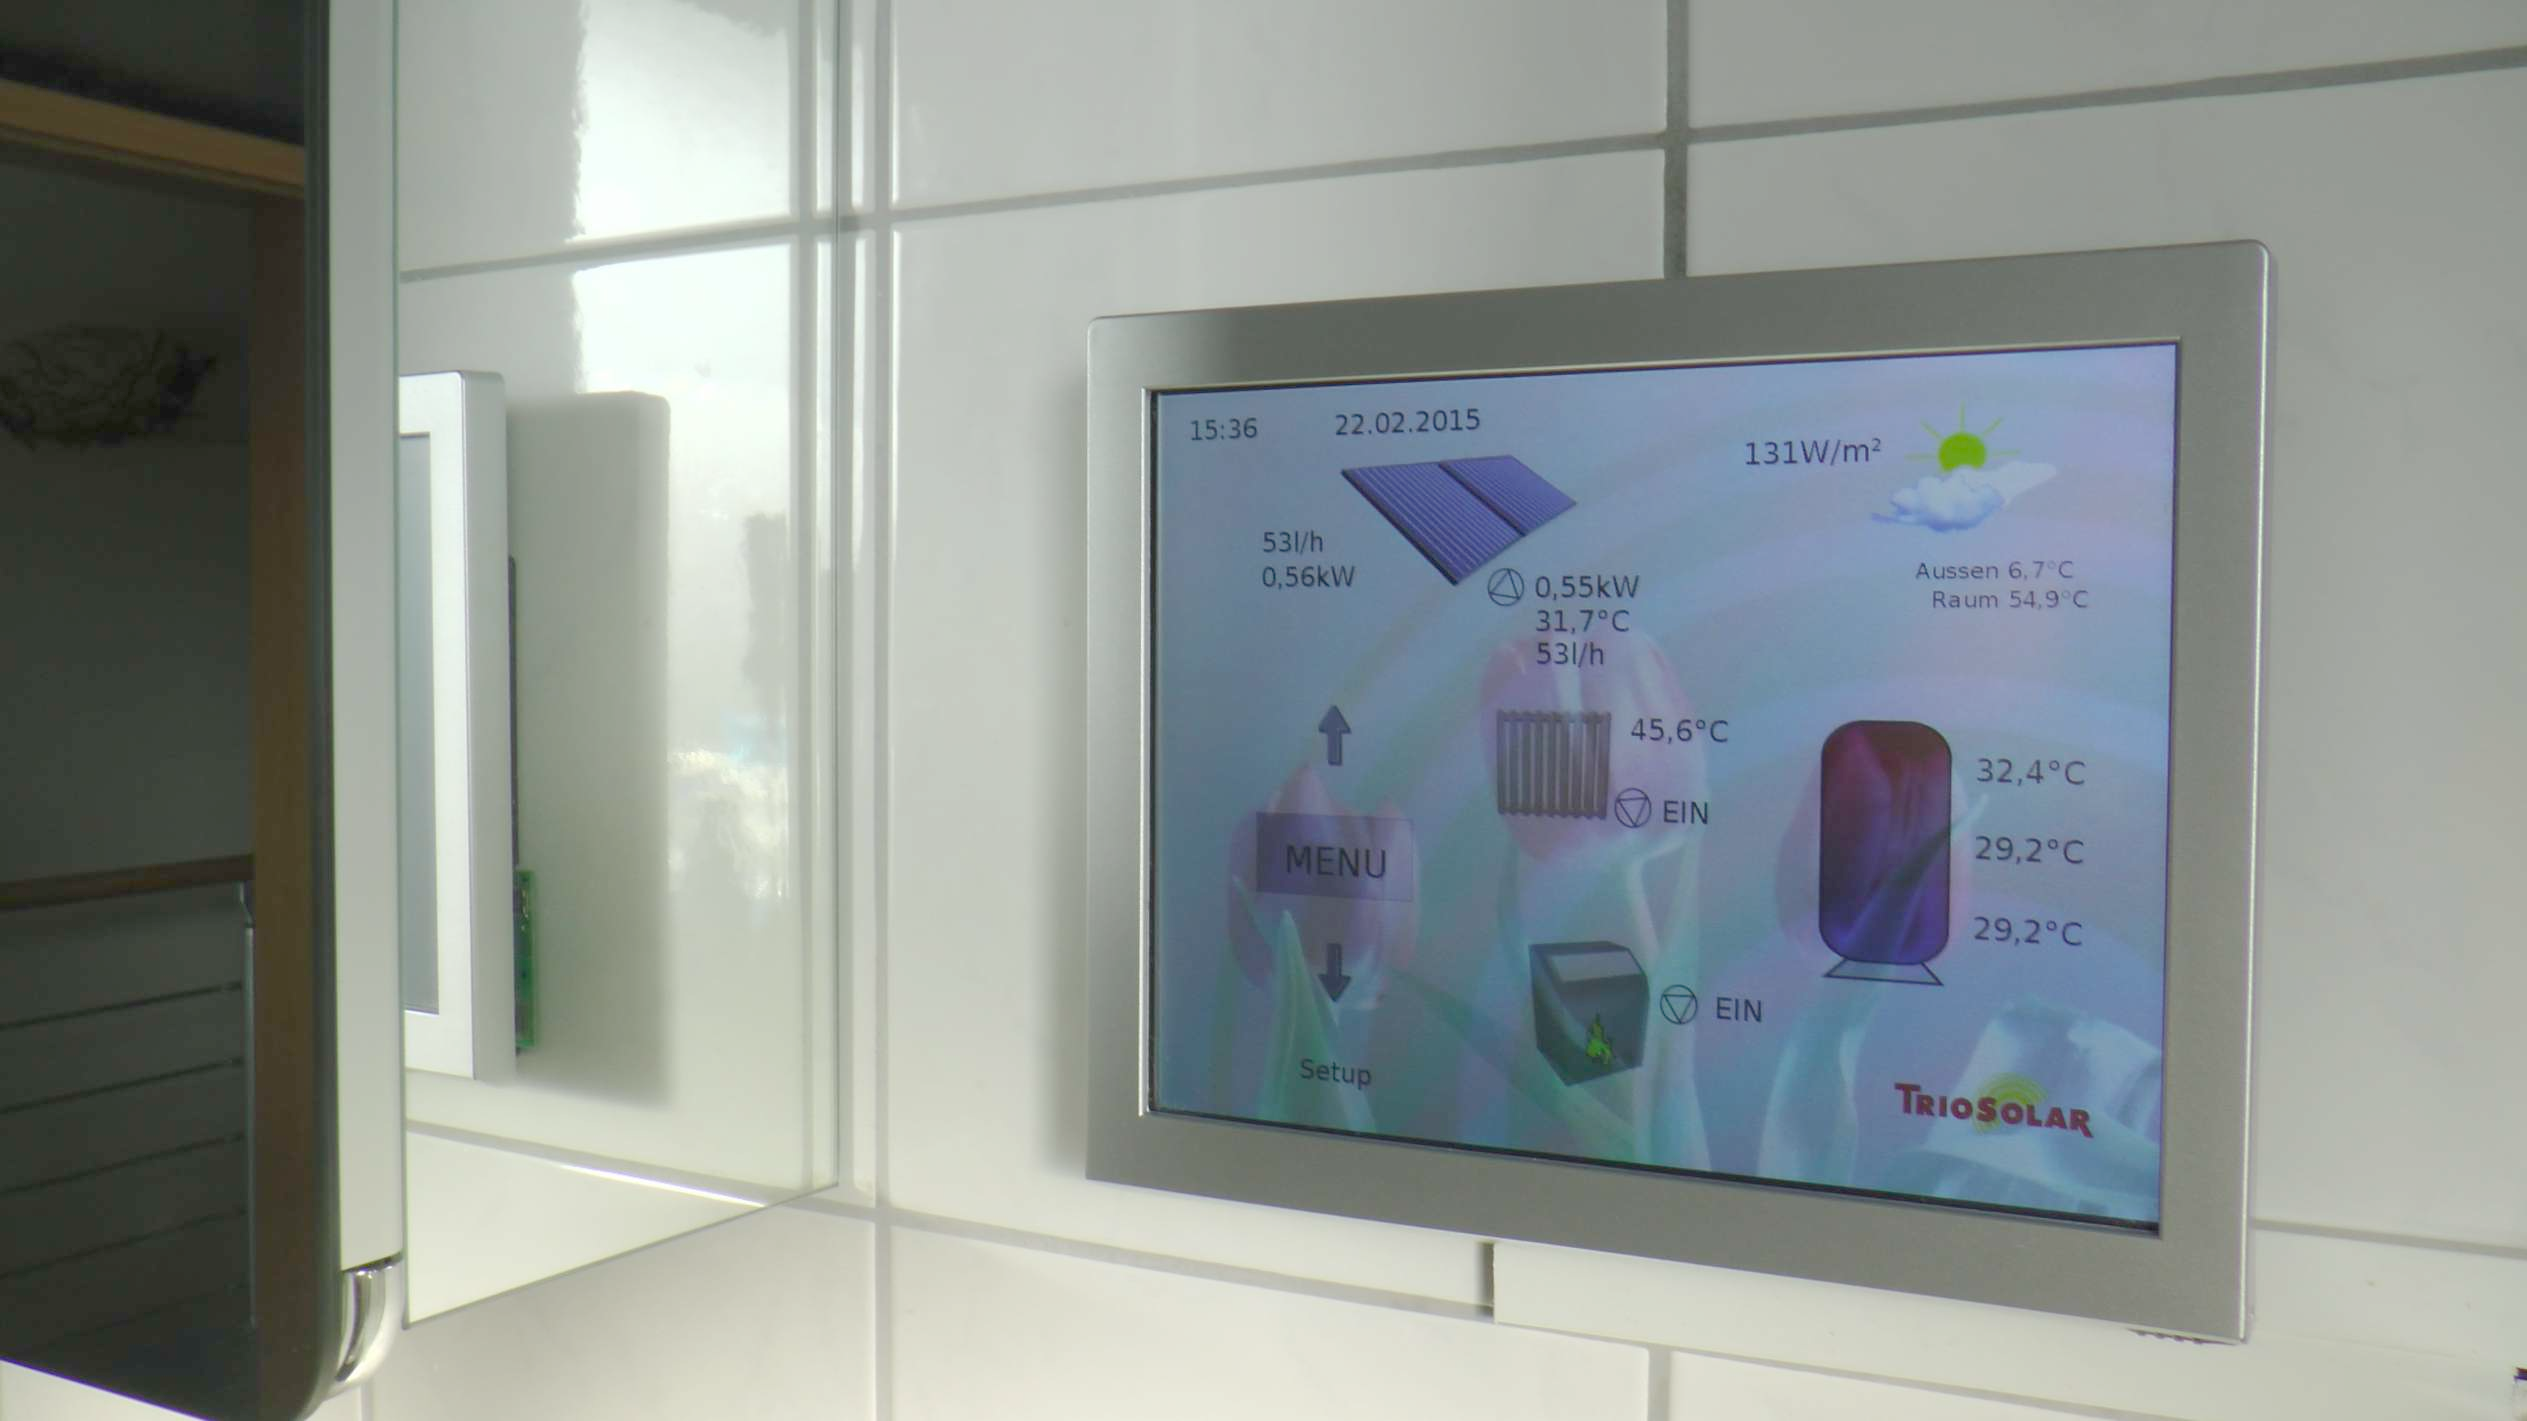 TrioSolar_TouchScreen